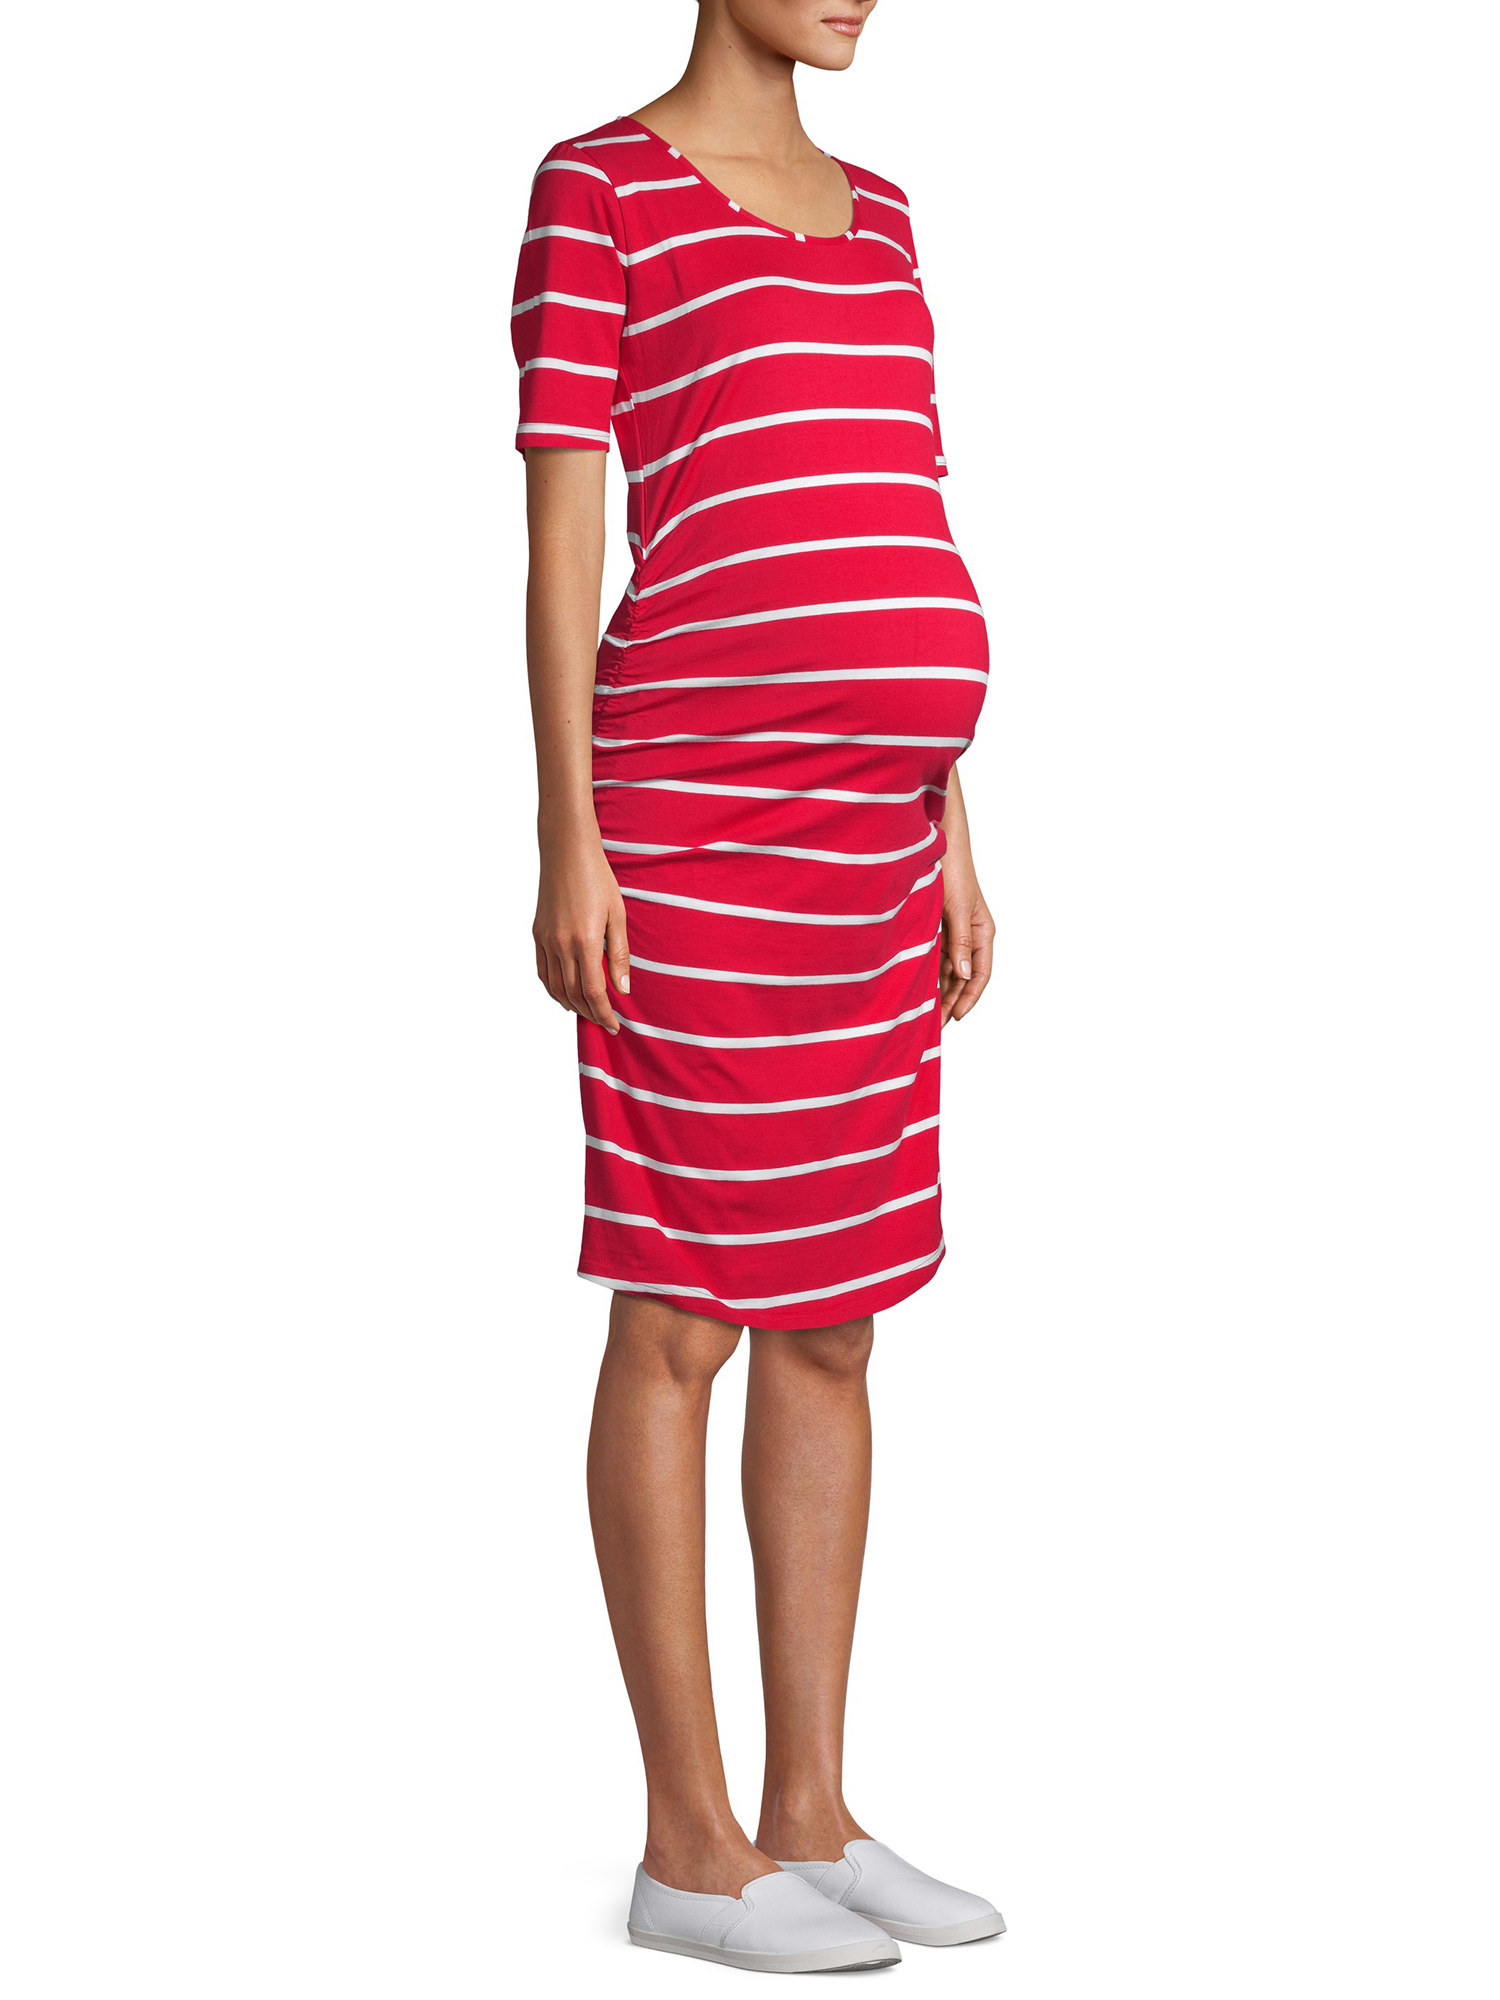 a model in a red dress with vertical white stripes